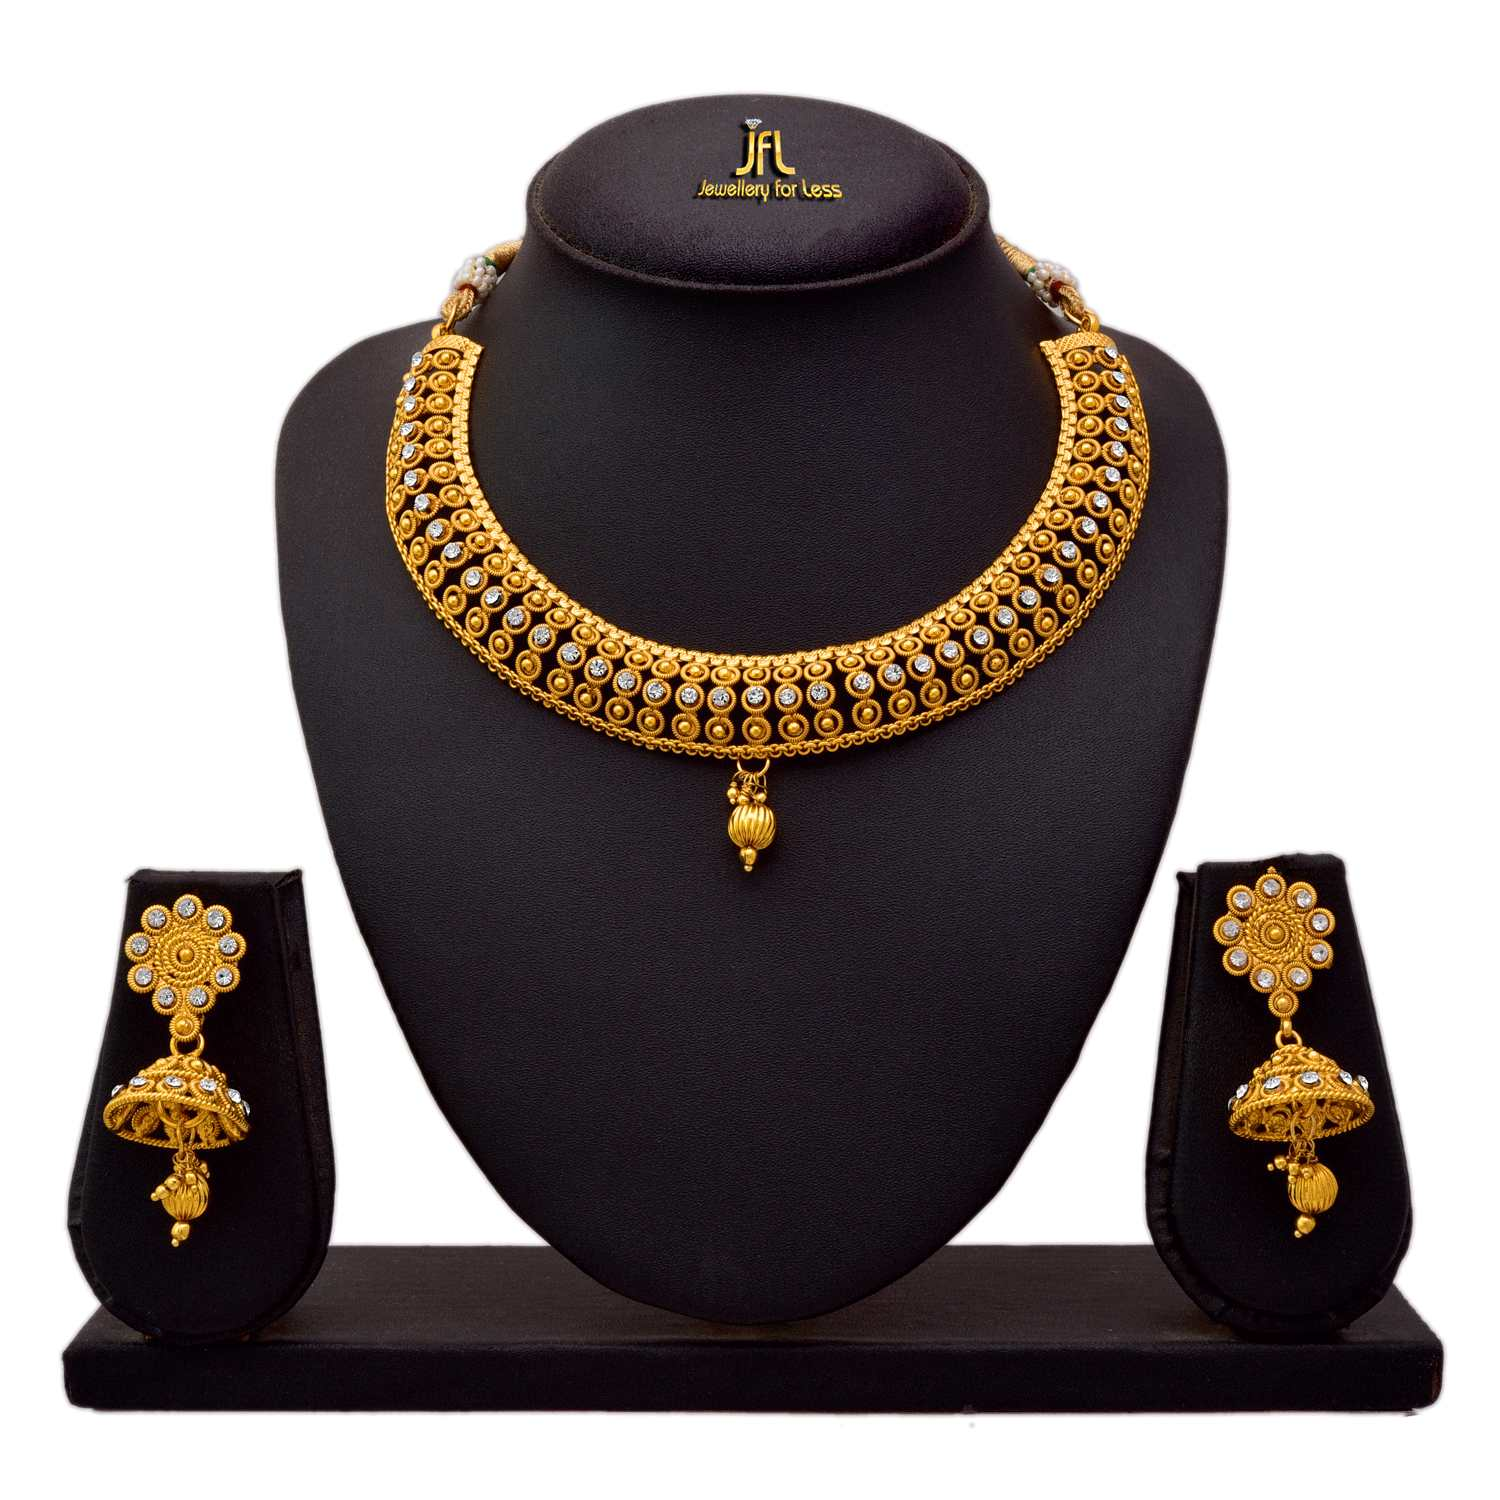 JFL - Traditional Ethnic One Gram Gold Plated Austrian Diamond Bead Designer Necklace Set with Earring for Women & Girls